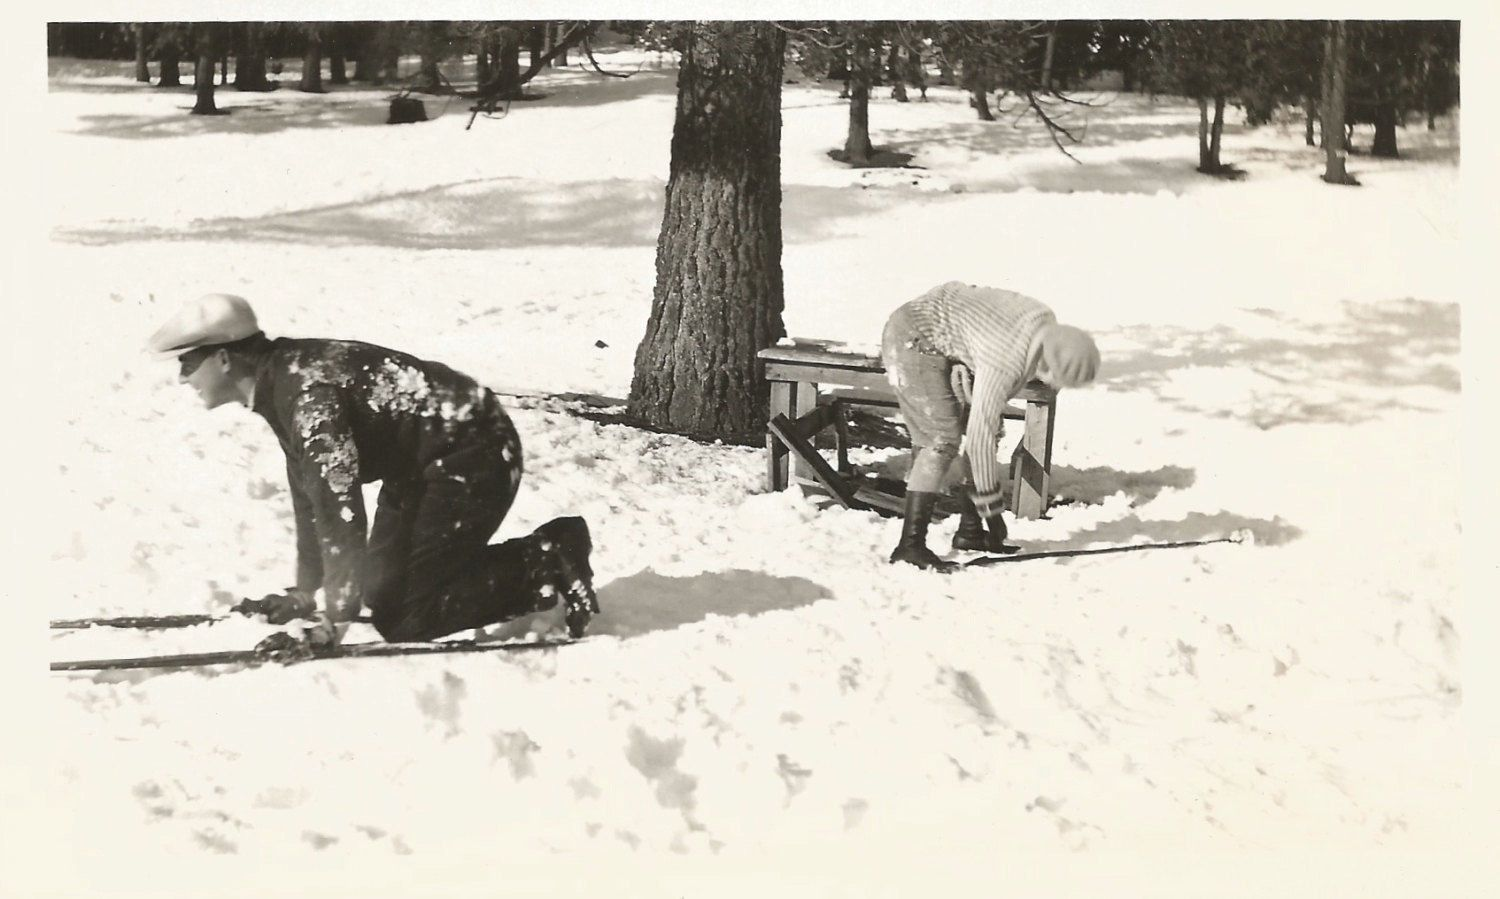 "Vintage Snapshot ""Downhill Racer"" Man Skis On All Fours Skiers Skis Winter Snow Found Vernacular Photo by SunshineVintagePhoto on Etsy https://www.etsy.com/listing/509032789/vintage-snapshot-downhill-racer-man-skis"